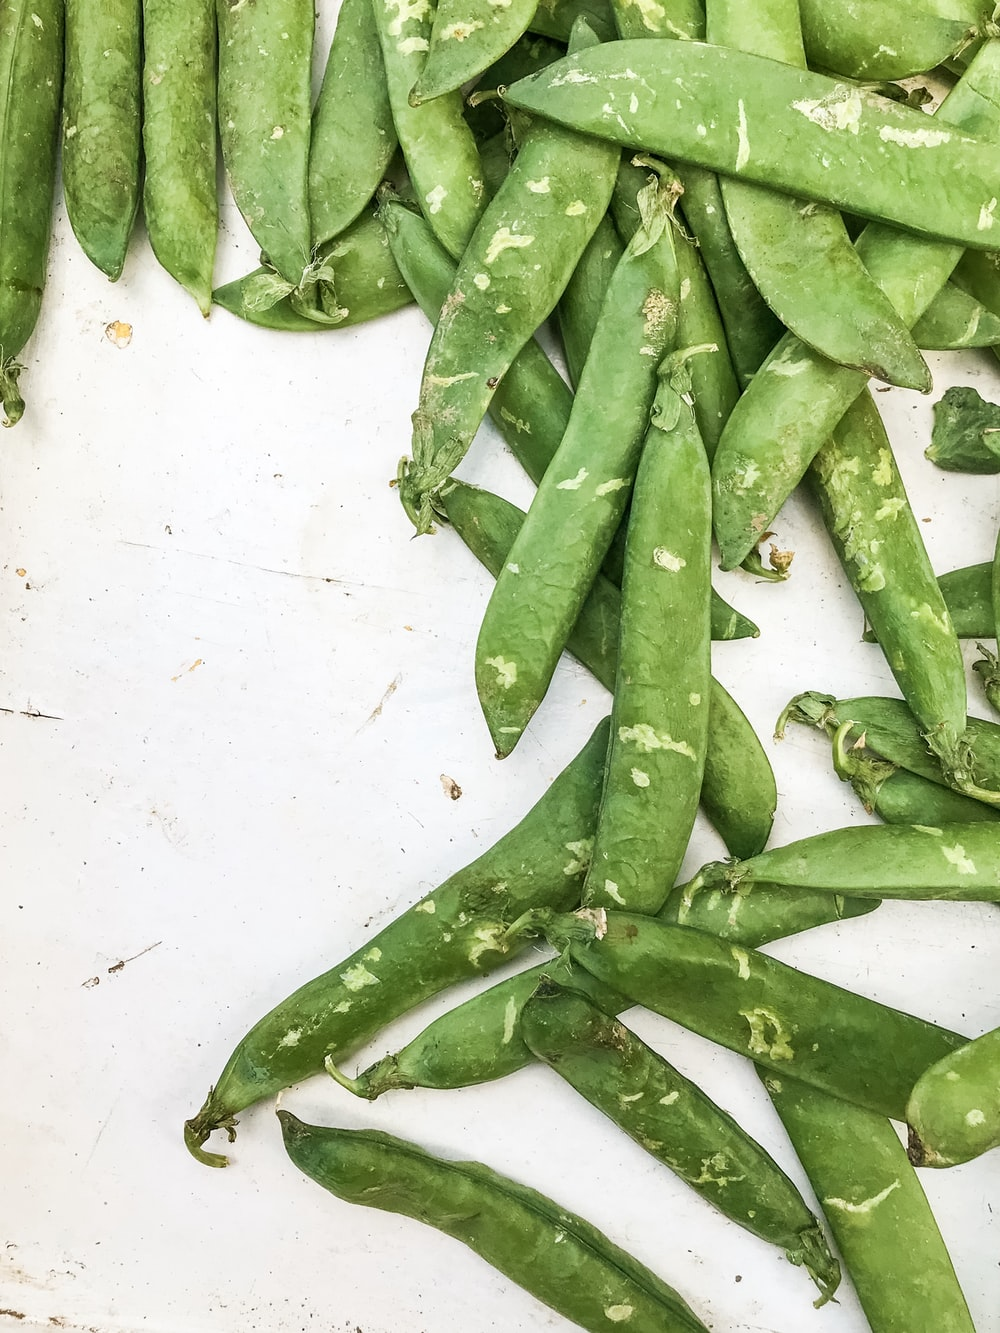 green beans on white surface